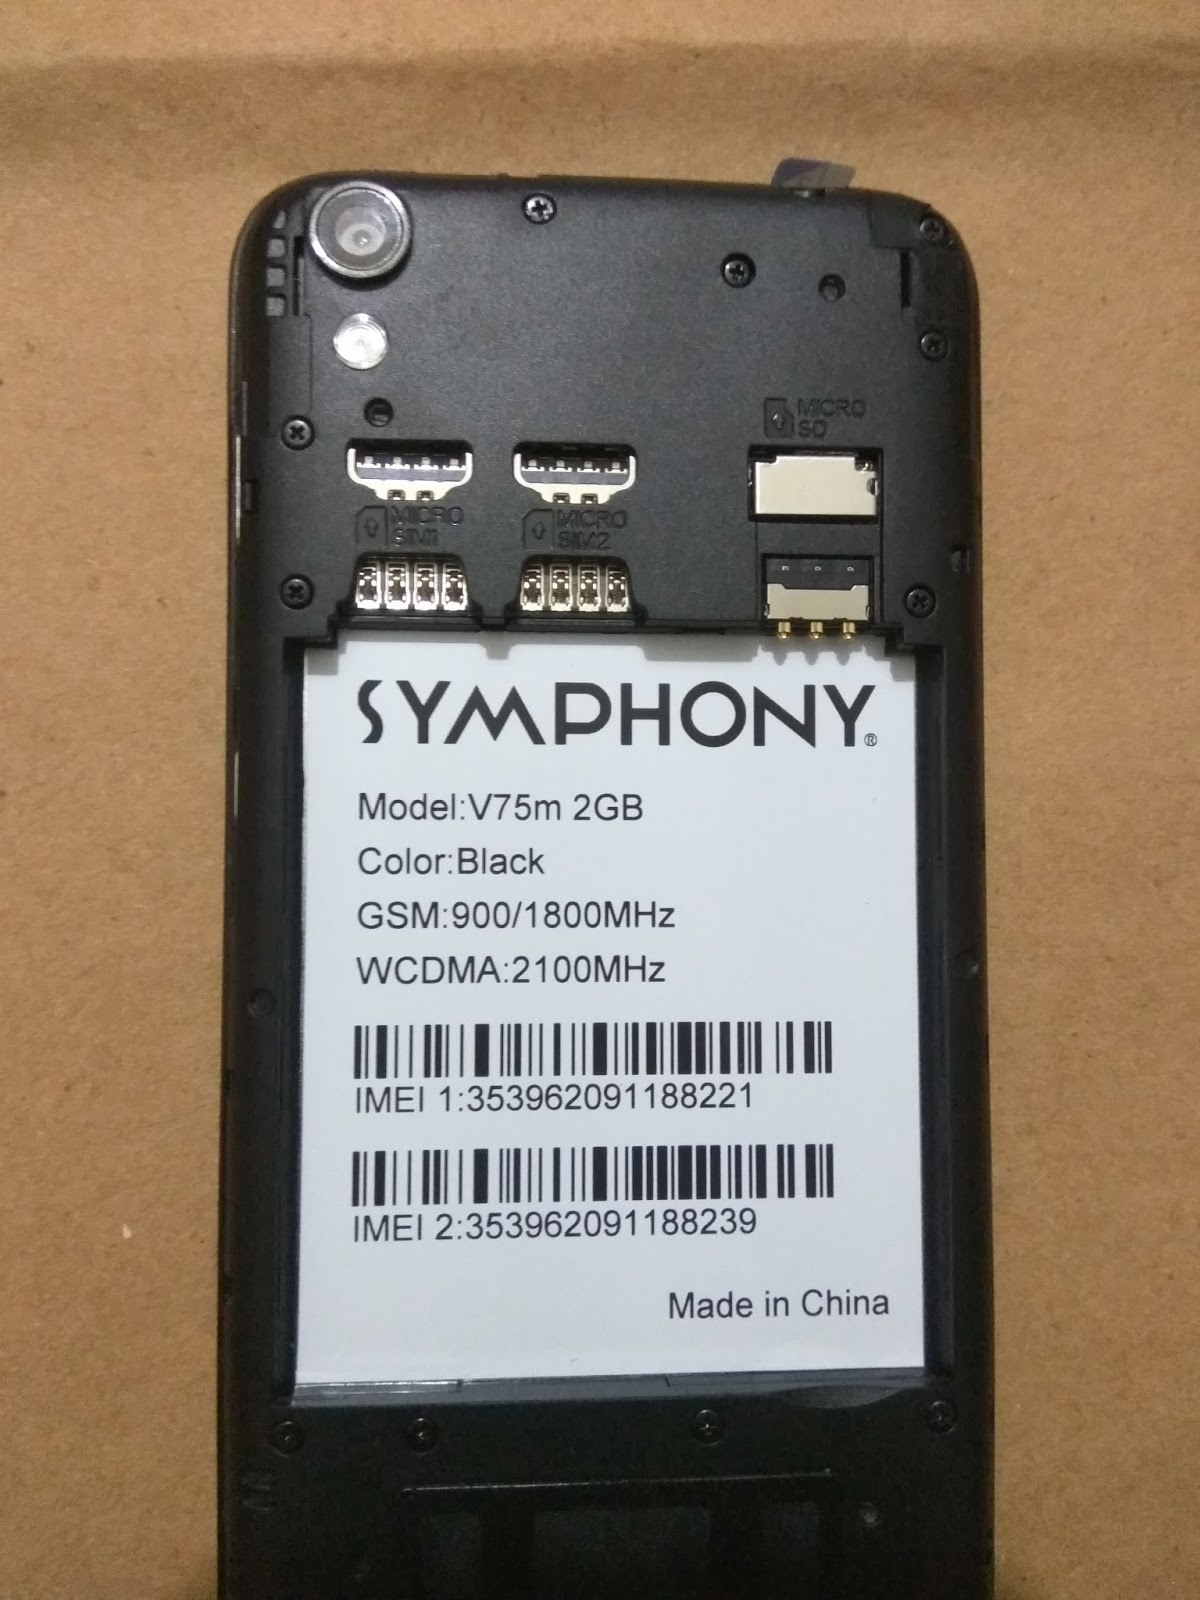 Flash File: SYMPHONY V75M 2GB RAM FRP REMOVE FLASH FILE